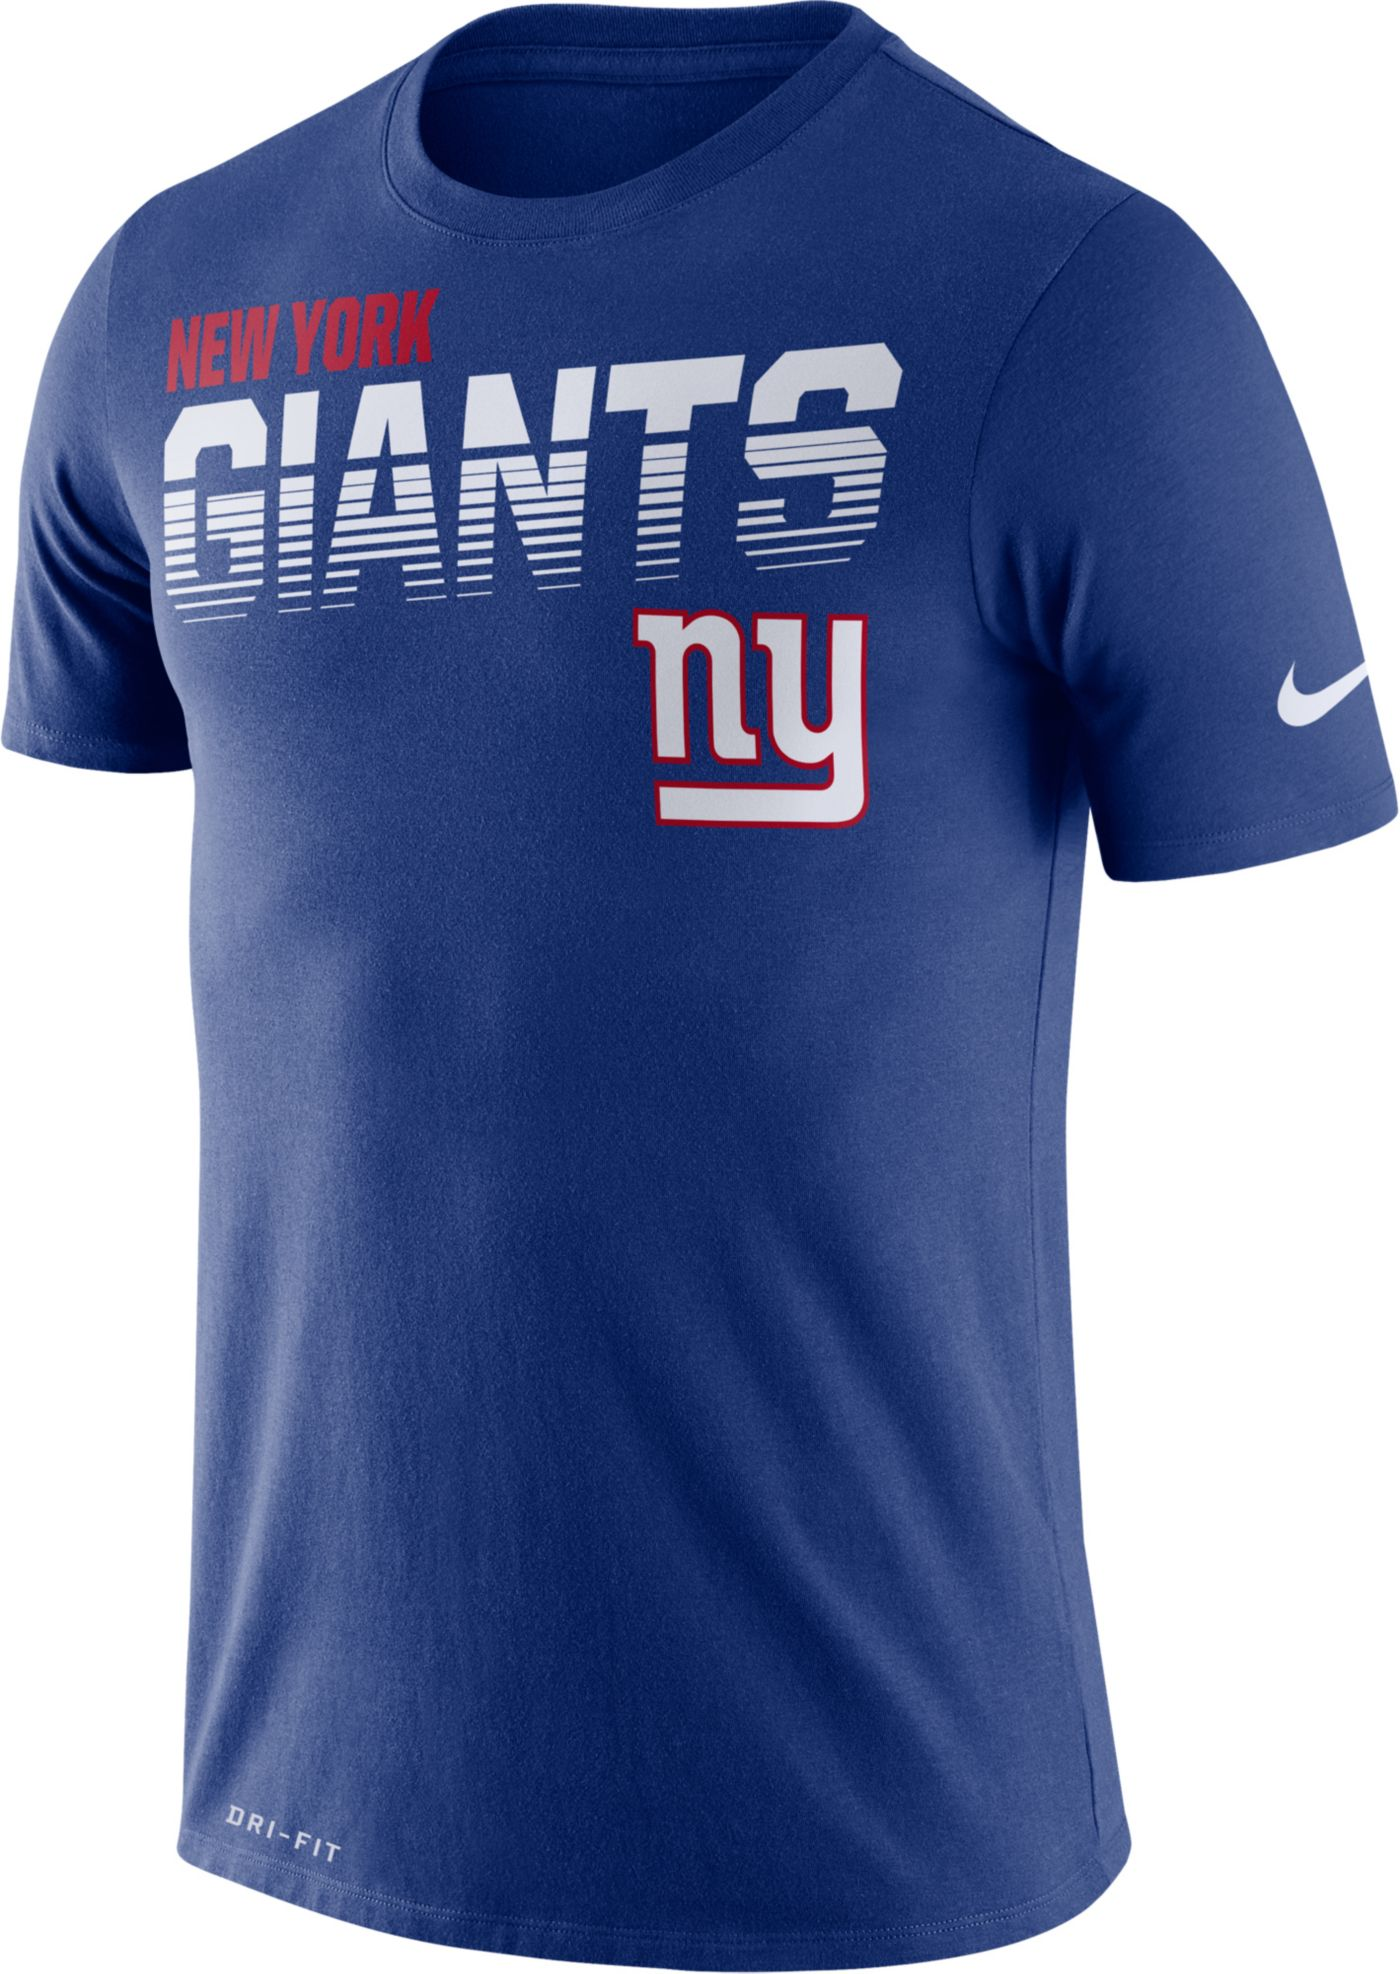 Nike Men's New York Giants Sideline Legend Performance Blue T-Shirt